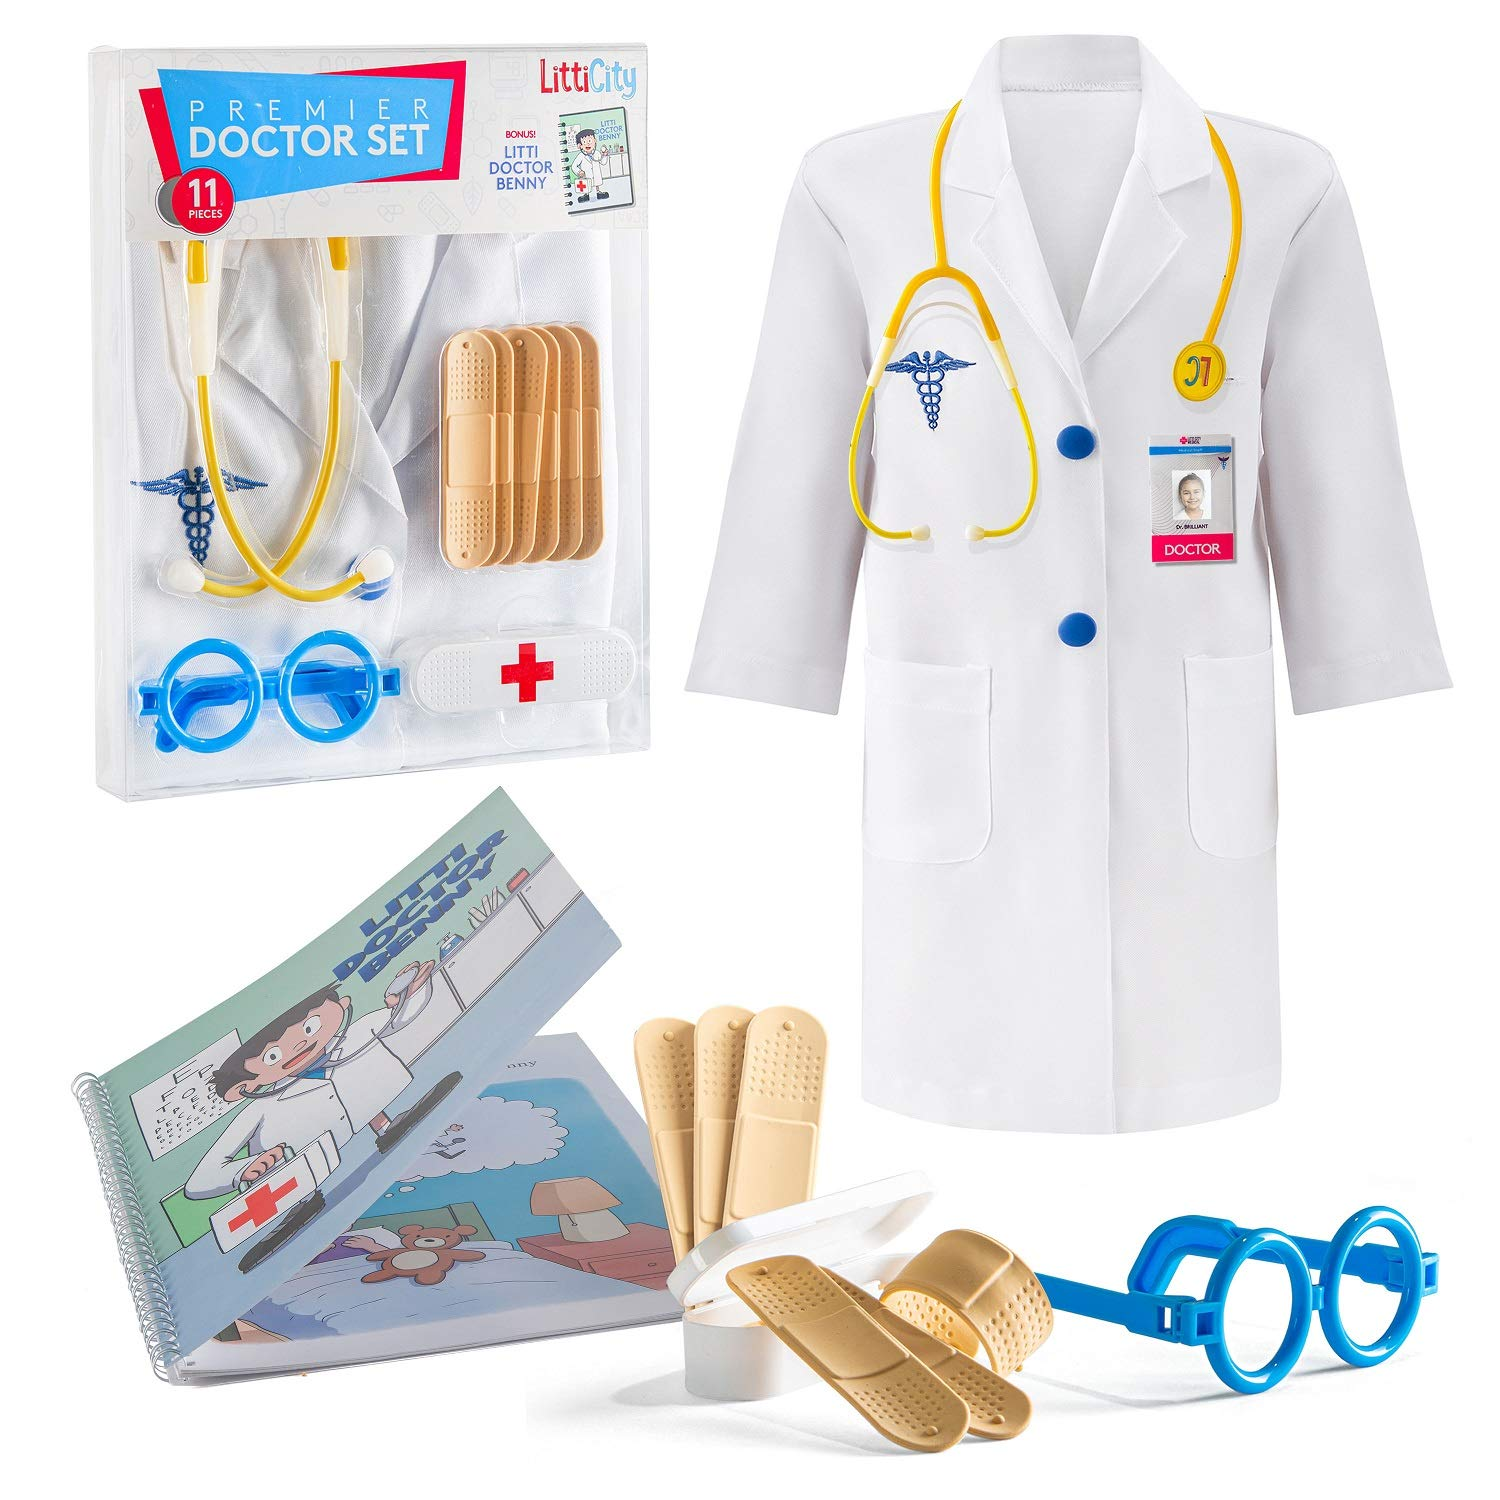 Litti City Doctor Kit for Kids - Complete Doctor/ Vet Accessories with White Doctor Coat, Stethoscope & Medical Kit - Doc Coat Costume & Tools - Pretend Play for Boys & Girls by Litti City